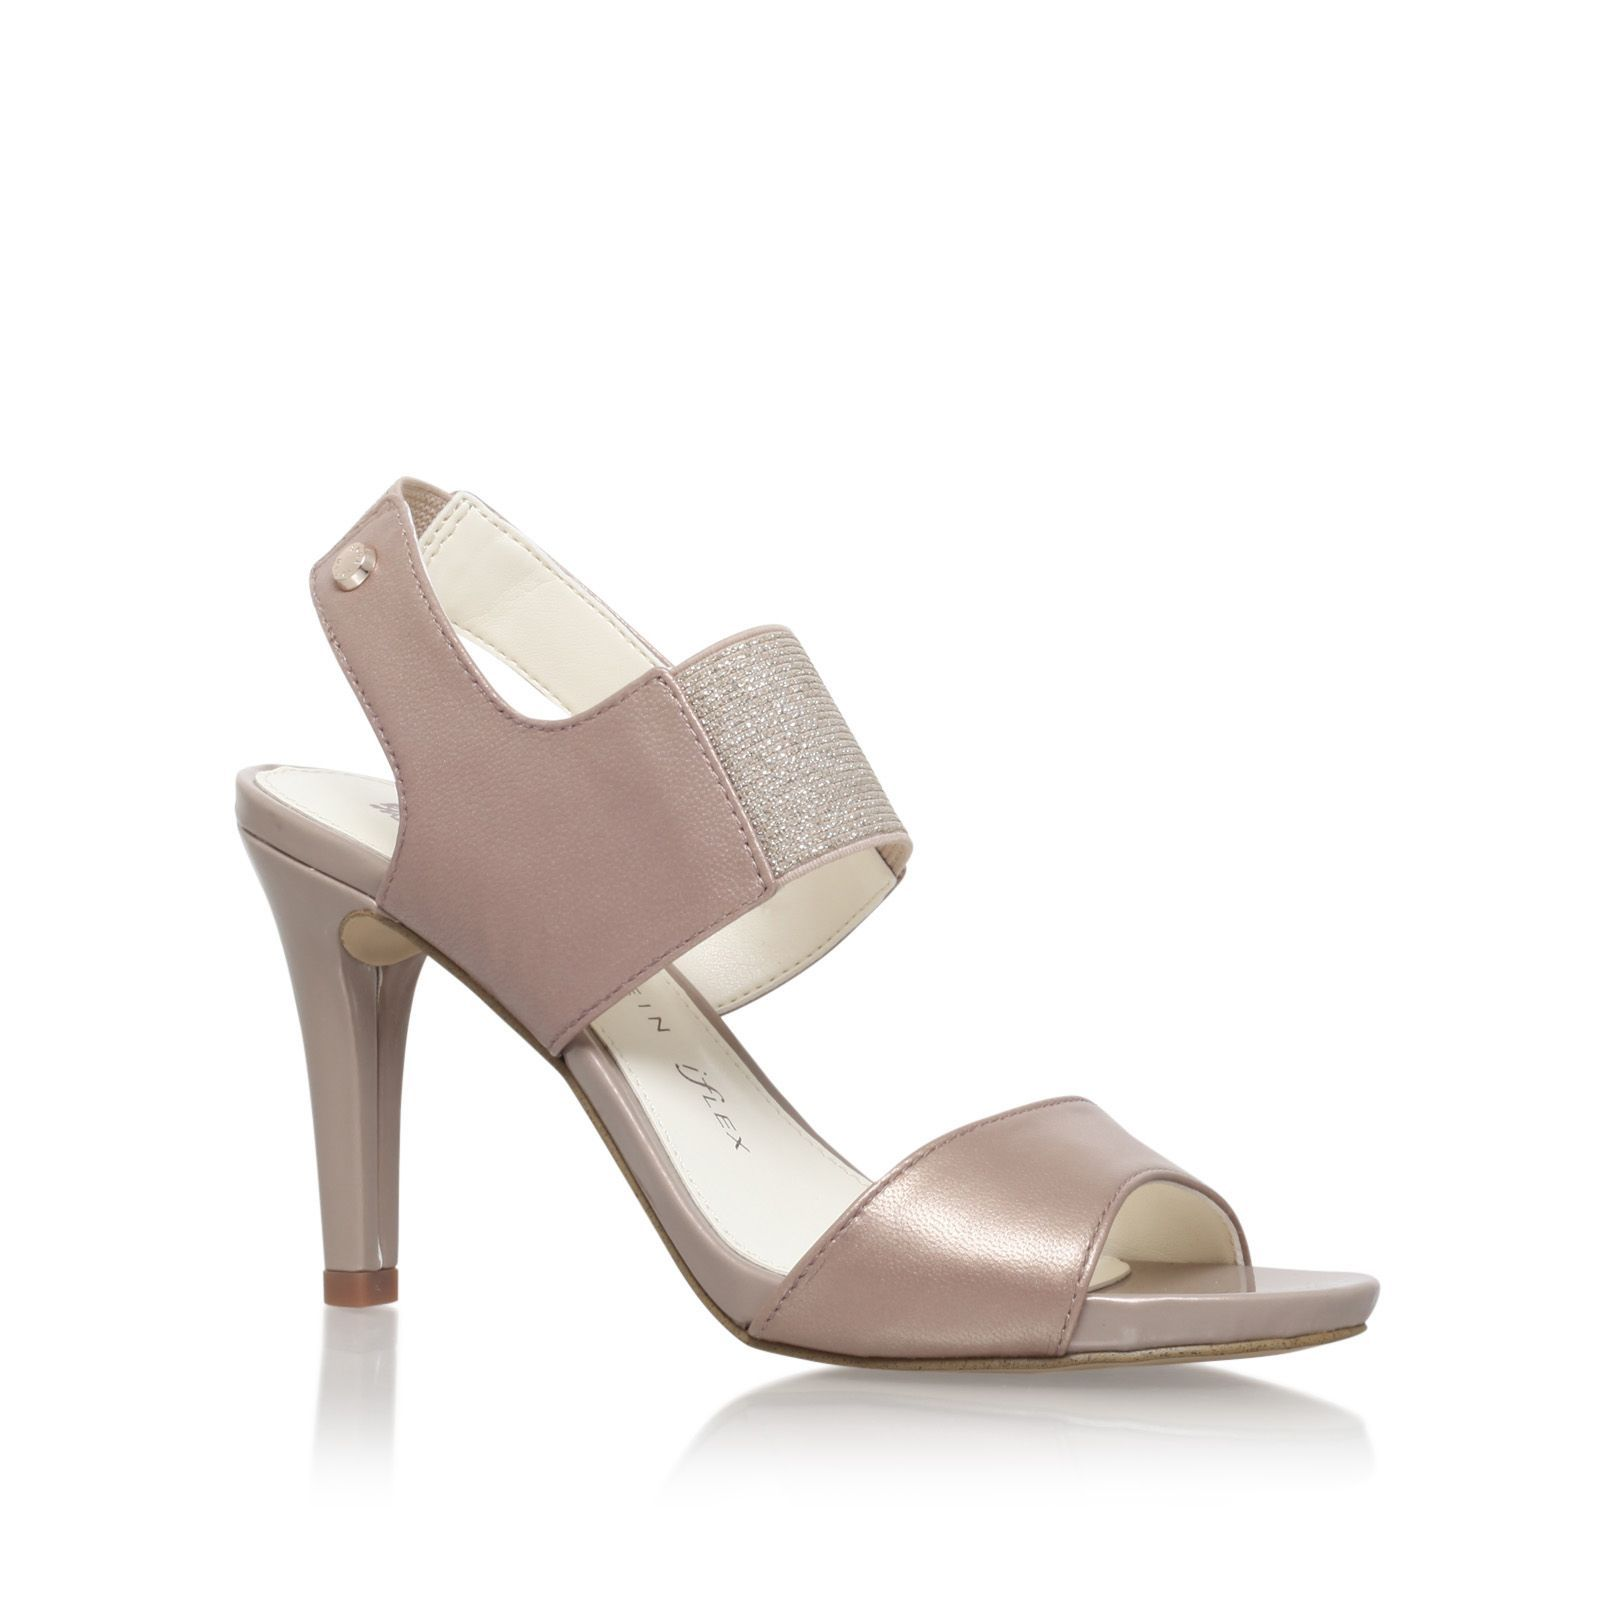 Anne Klein Olexia high heel sandals, Bronze